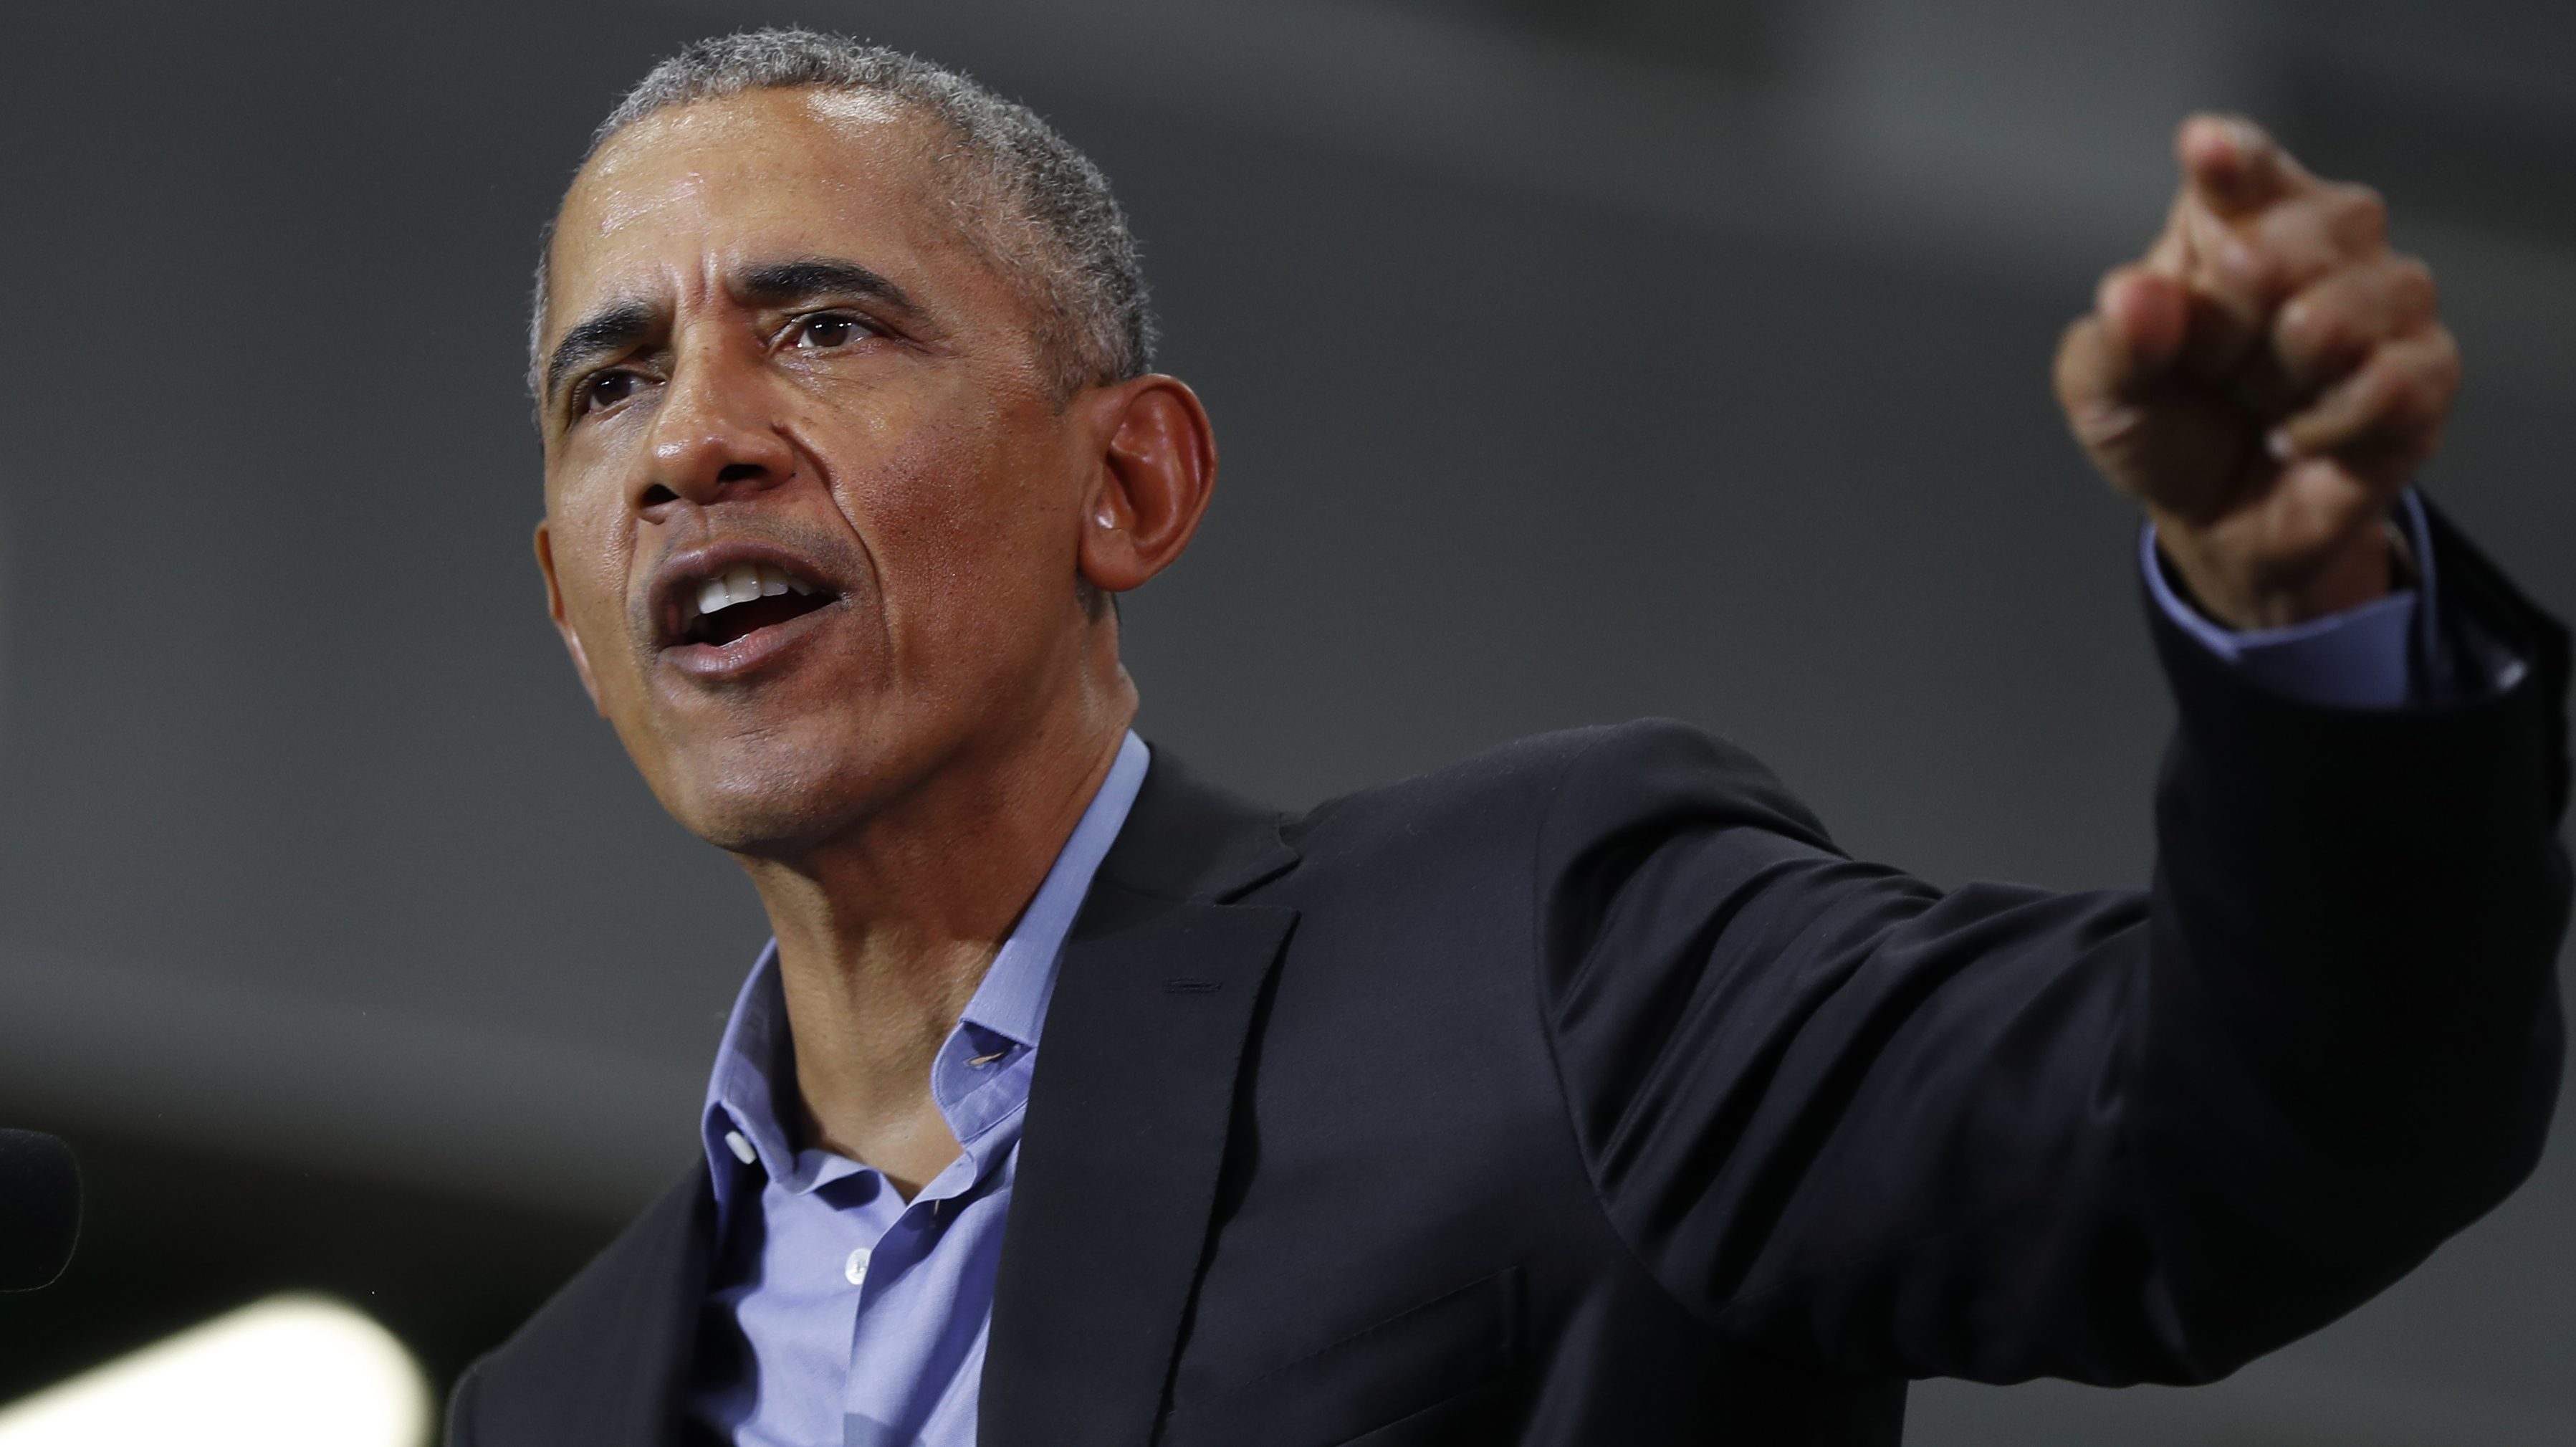 Westlake Legal Group AP18300043944234-e1541186319563 Obama gets political again, launches initiative to fight gerrymandering Ronn Blitzer fox-news/person/barack-obama fox news fnc/politics fnc f28dc2d8-8111-507c-ad3f-13fa9d85fe36 article